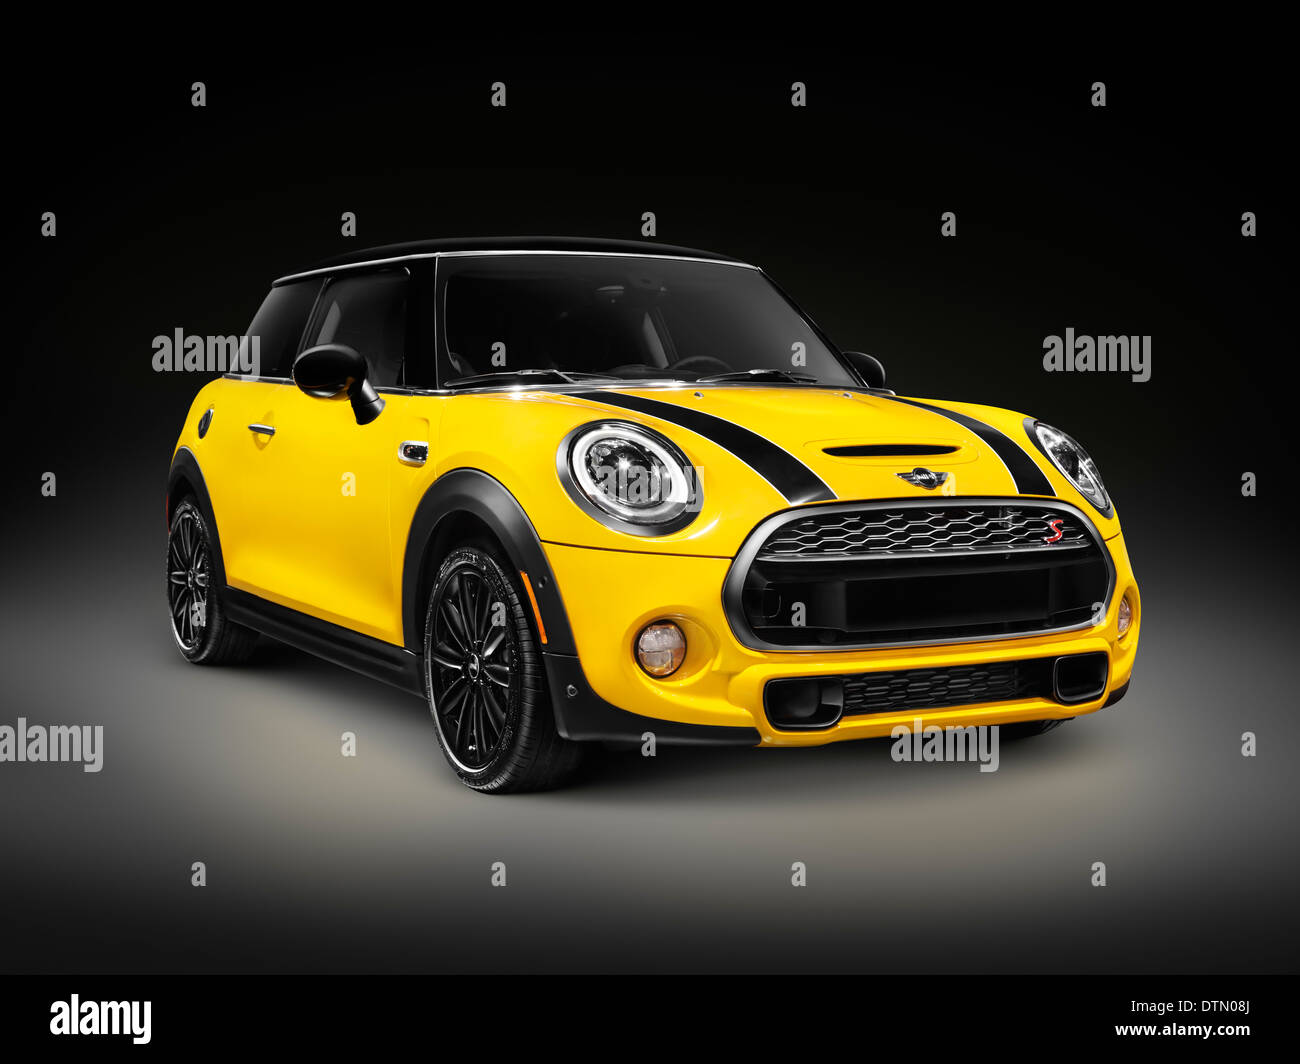 Yellow 2014 Mini Cooper S, Mini Hatch, hatchback compact city car isolated on black background - Stock Image